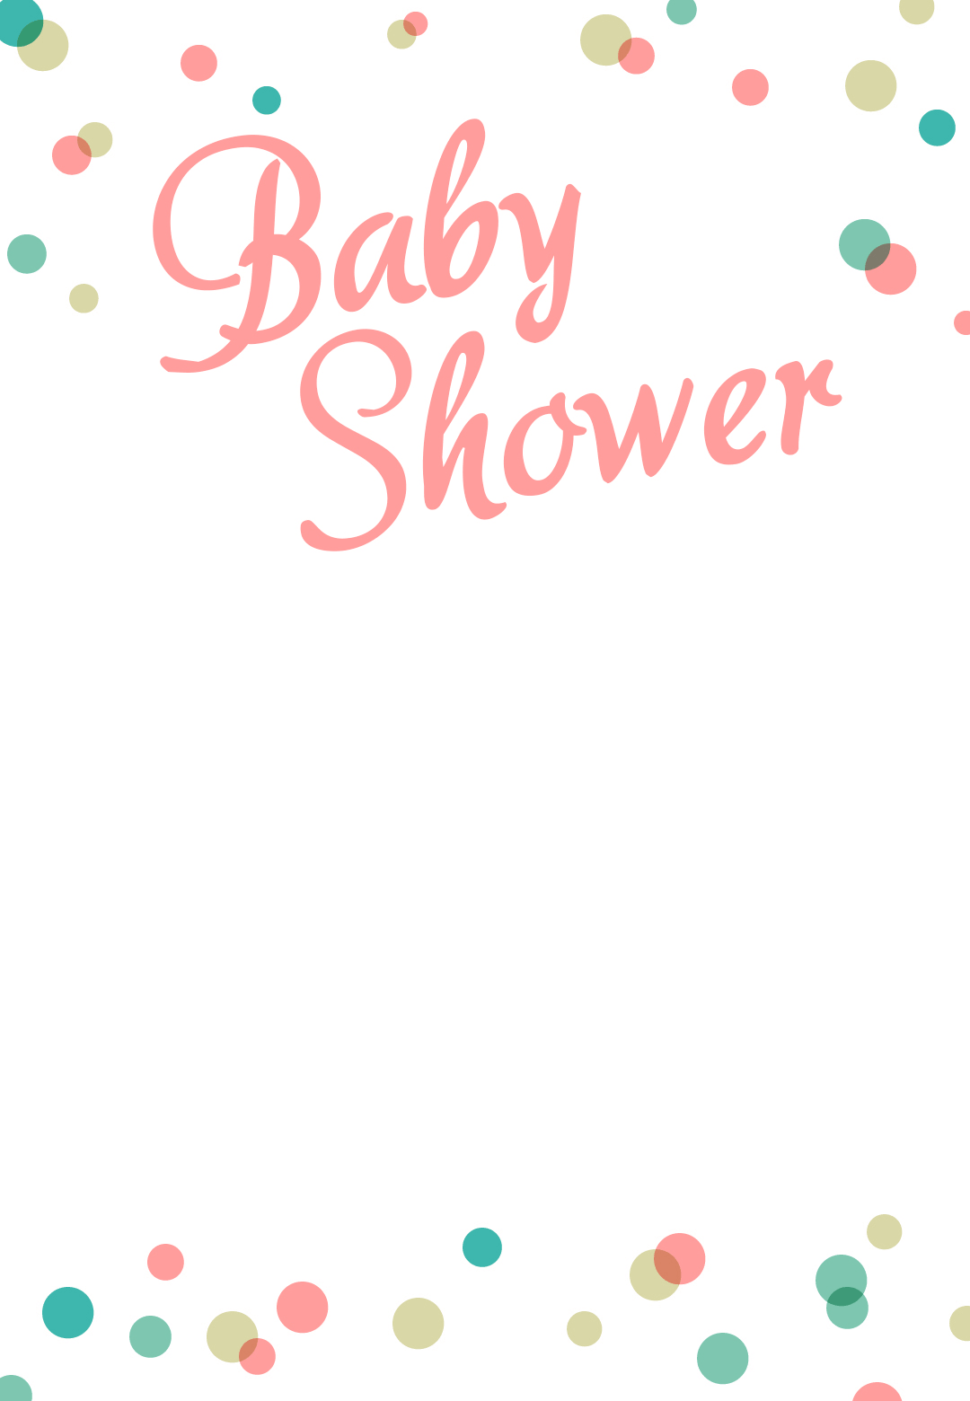 Medium Size of Baby Shower:sturdy Baby Shower Invitation Template Image Concepts Baby Shower Invitation Template Baby Shower Bingo Baby Shower Accessories Arreglos Para Baby Shower Baby Shower Clip Art Dancing Dots Borders Free Printable Baby Shower Invitation